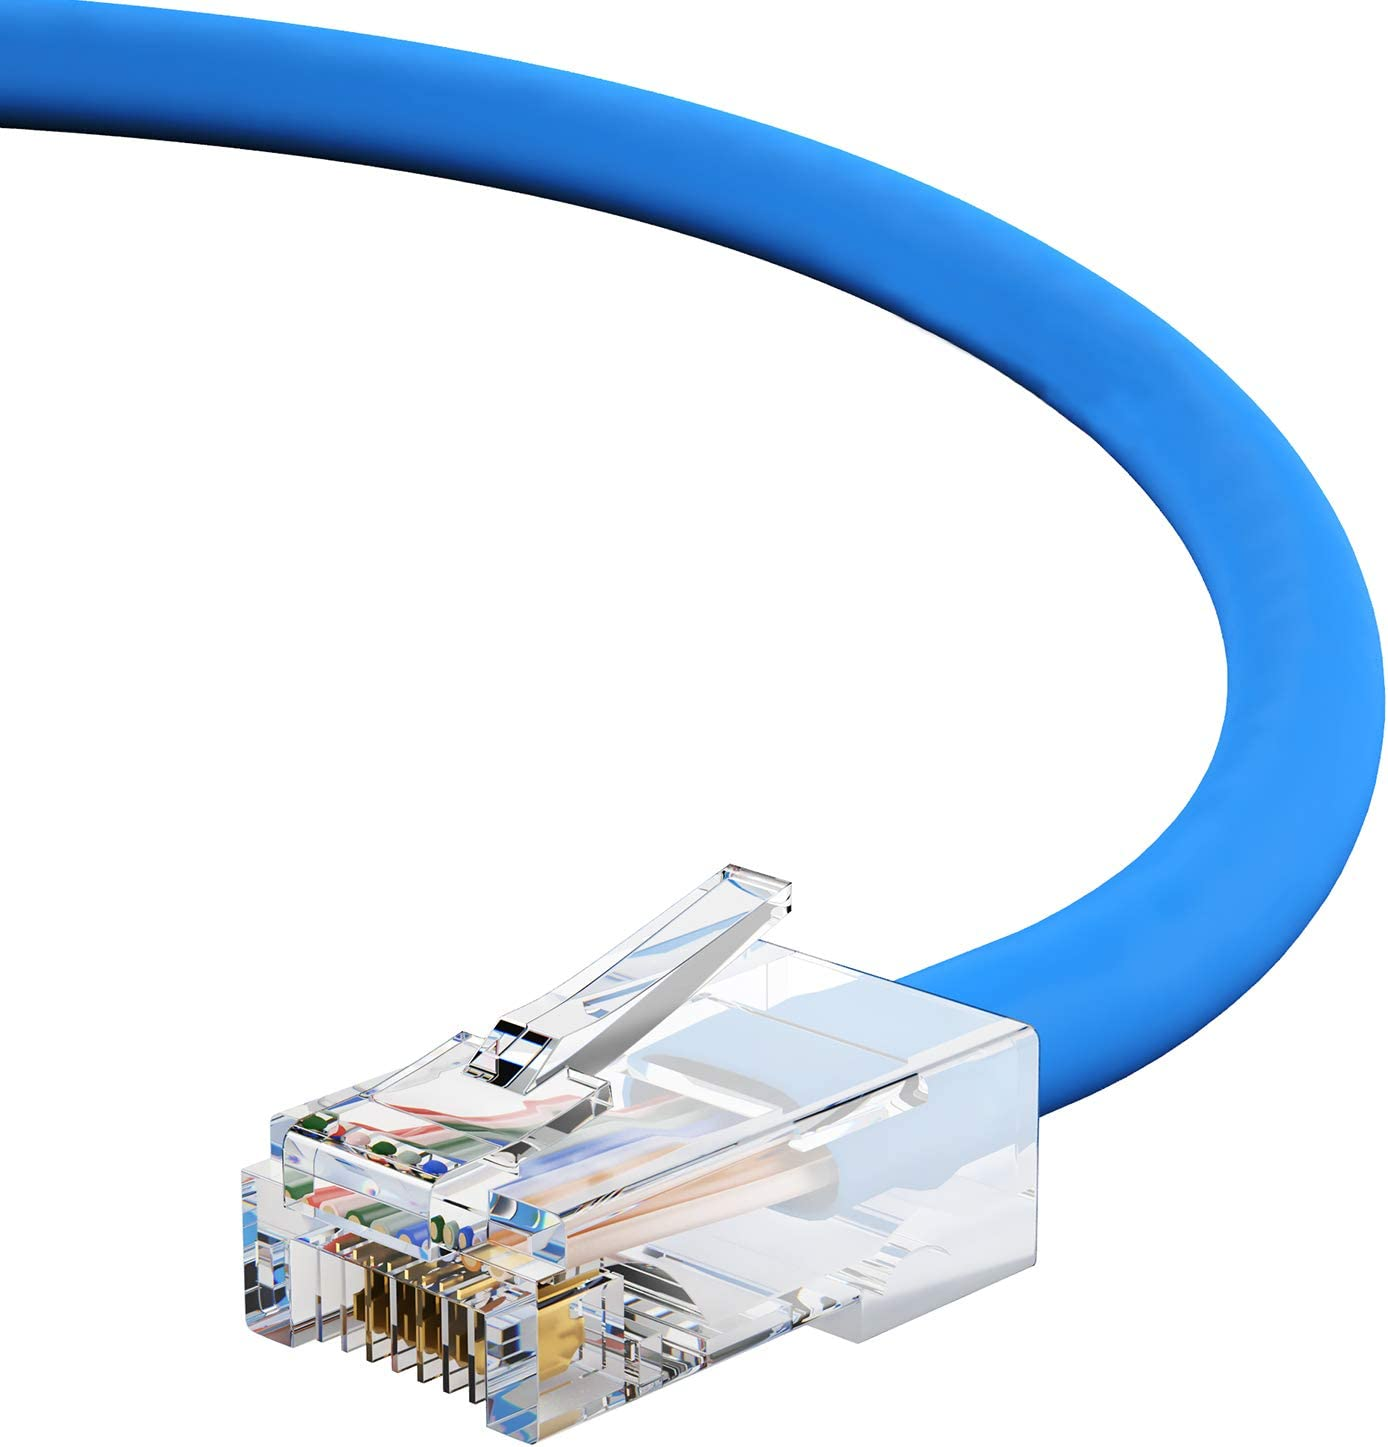 Black 1Gigabit//Sec High Speed LAN Internet//Patch Cable 24AWG Network Cable with Gold Plated RJ45 Non-Booted Connector 350MHz 50-Pack - 0.5 Feet GOWOS Cat5e Ethernet Cable